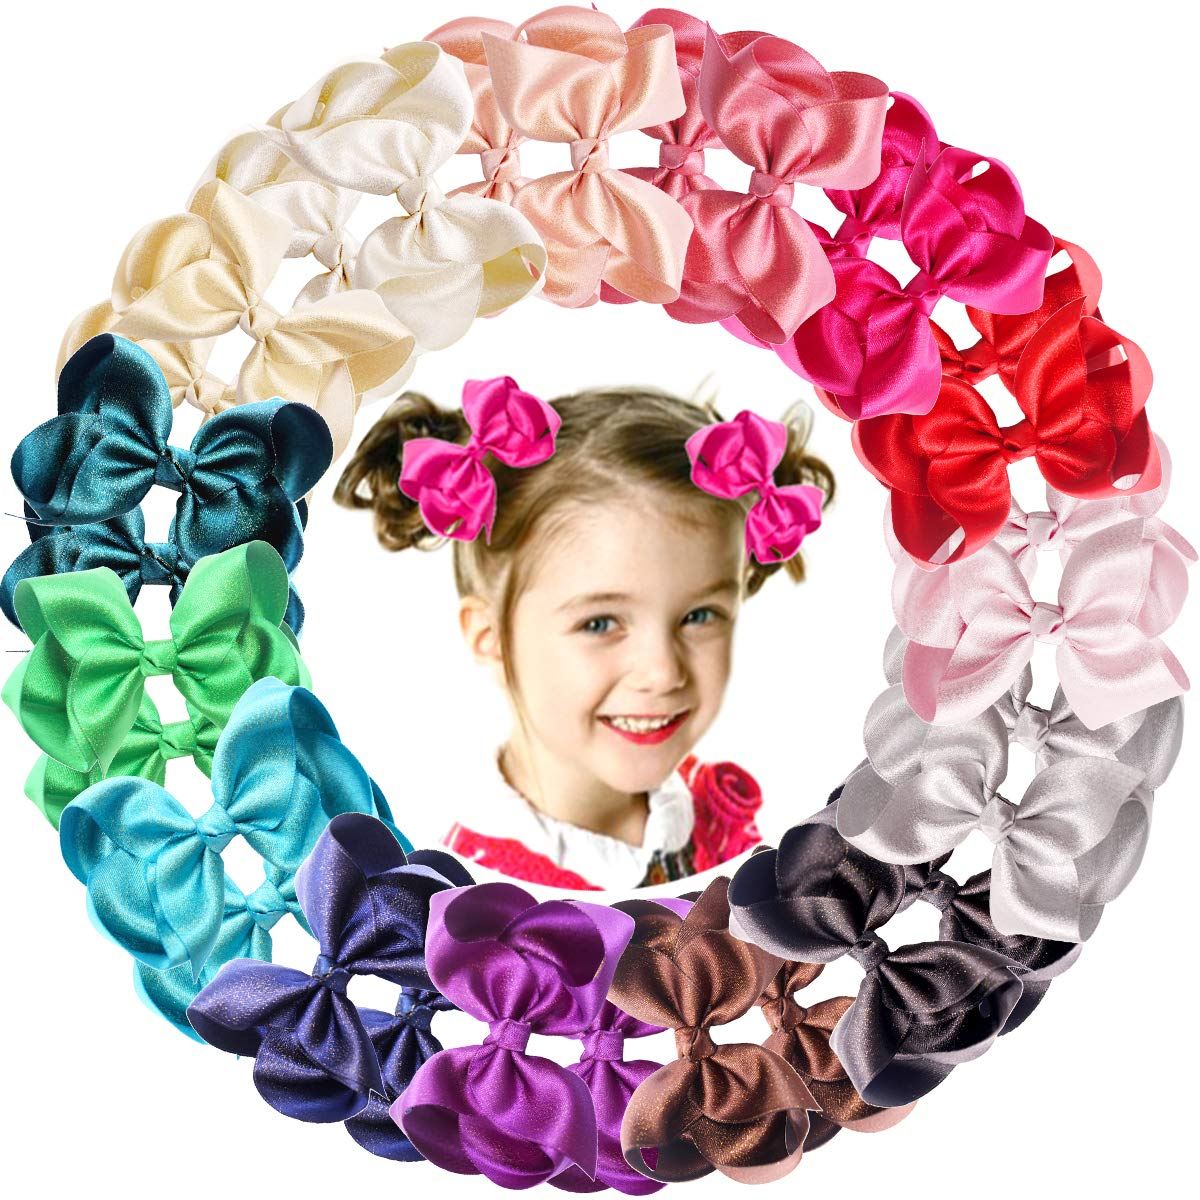 30 Pieces Baby Girls Hair Bows Alligator Clips Grosgrain Ribbon 4.5